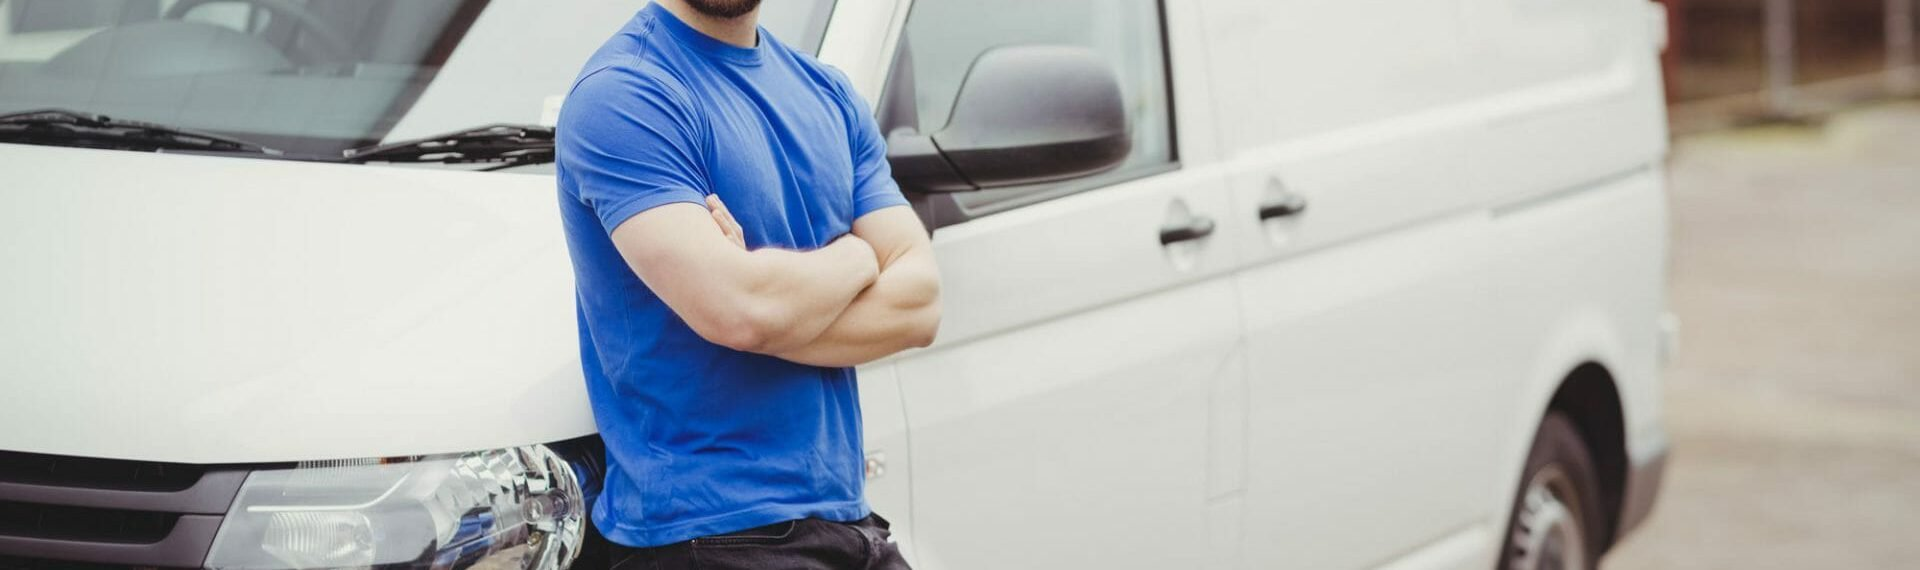 Buy Or Lease: Is It Better To Buy Or Lease A Van For Your Trade Business?